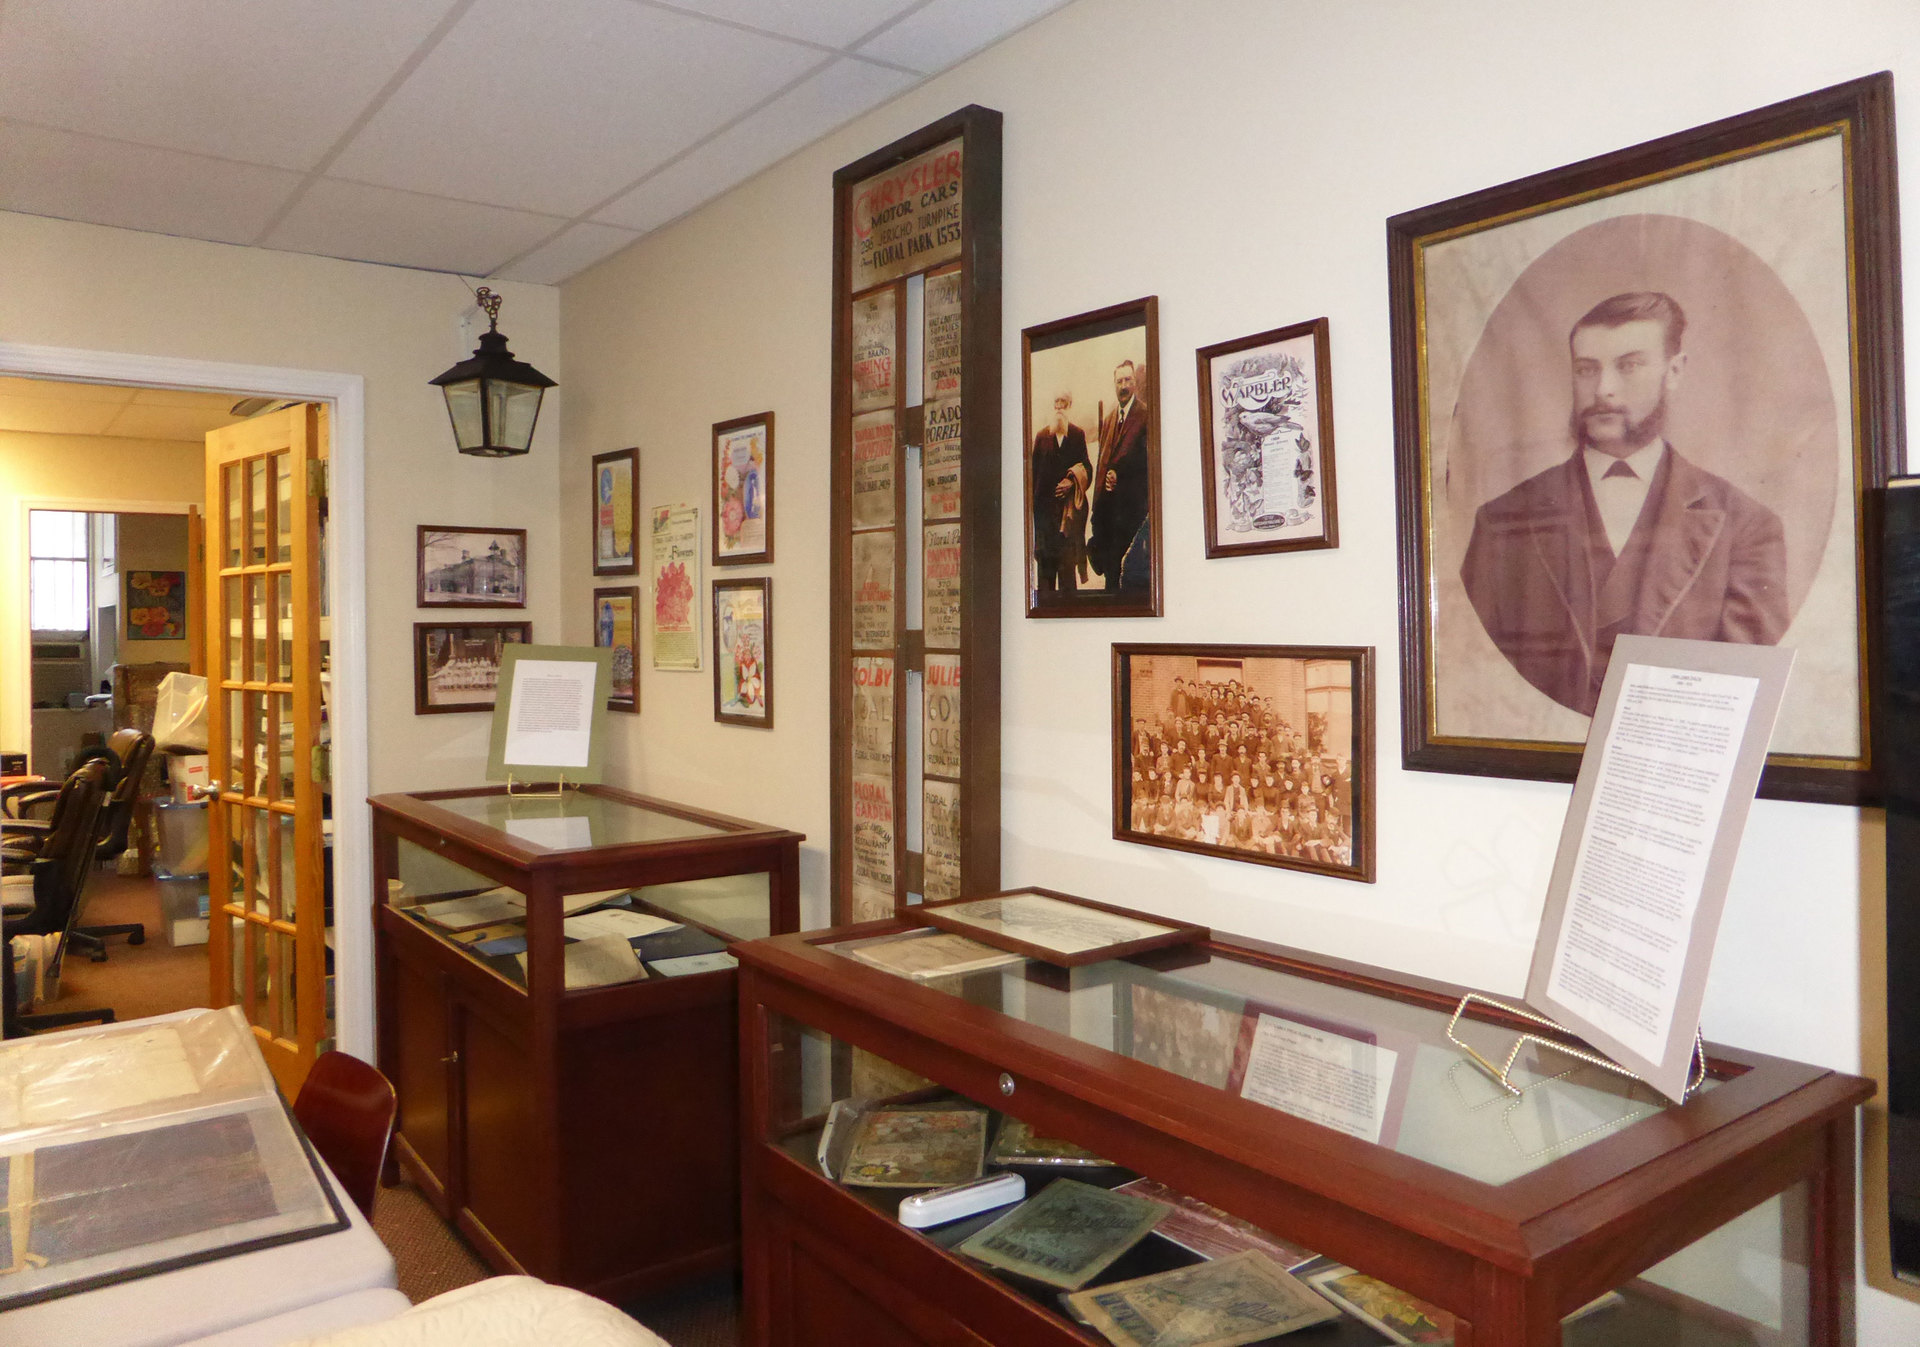 Floral Park Historical Museum in The Tyson Building, Open for Tours by appointment